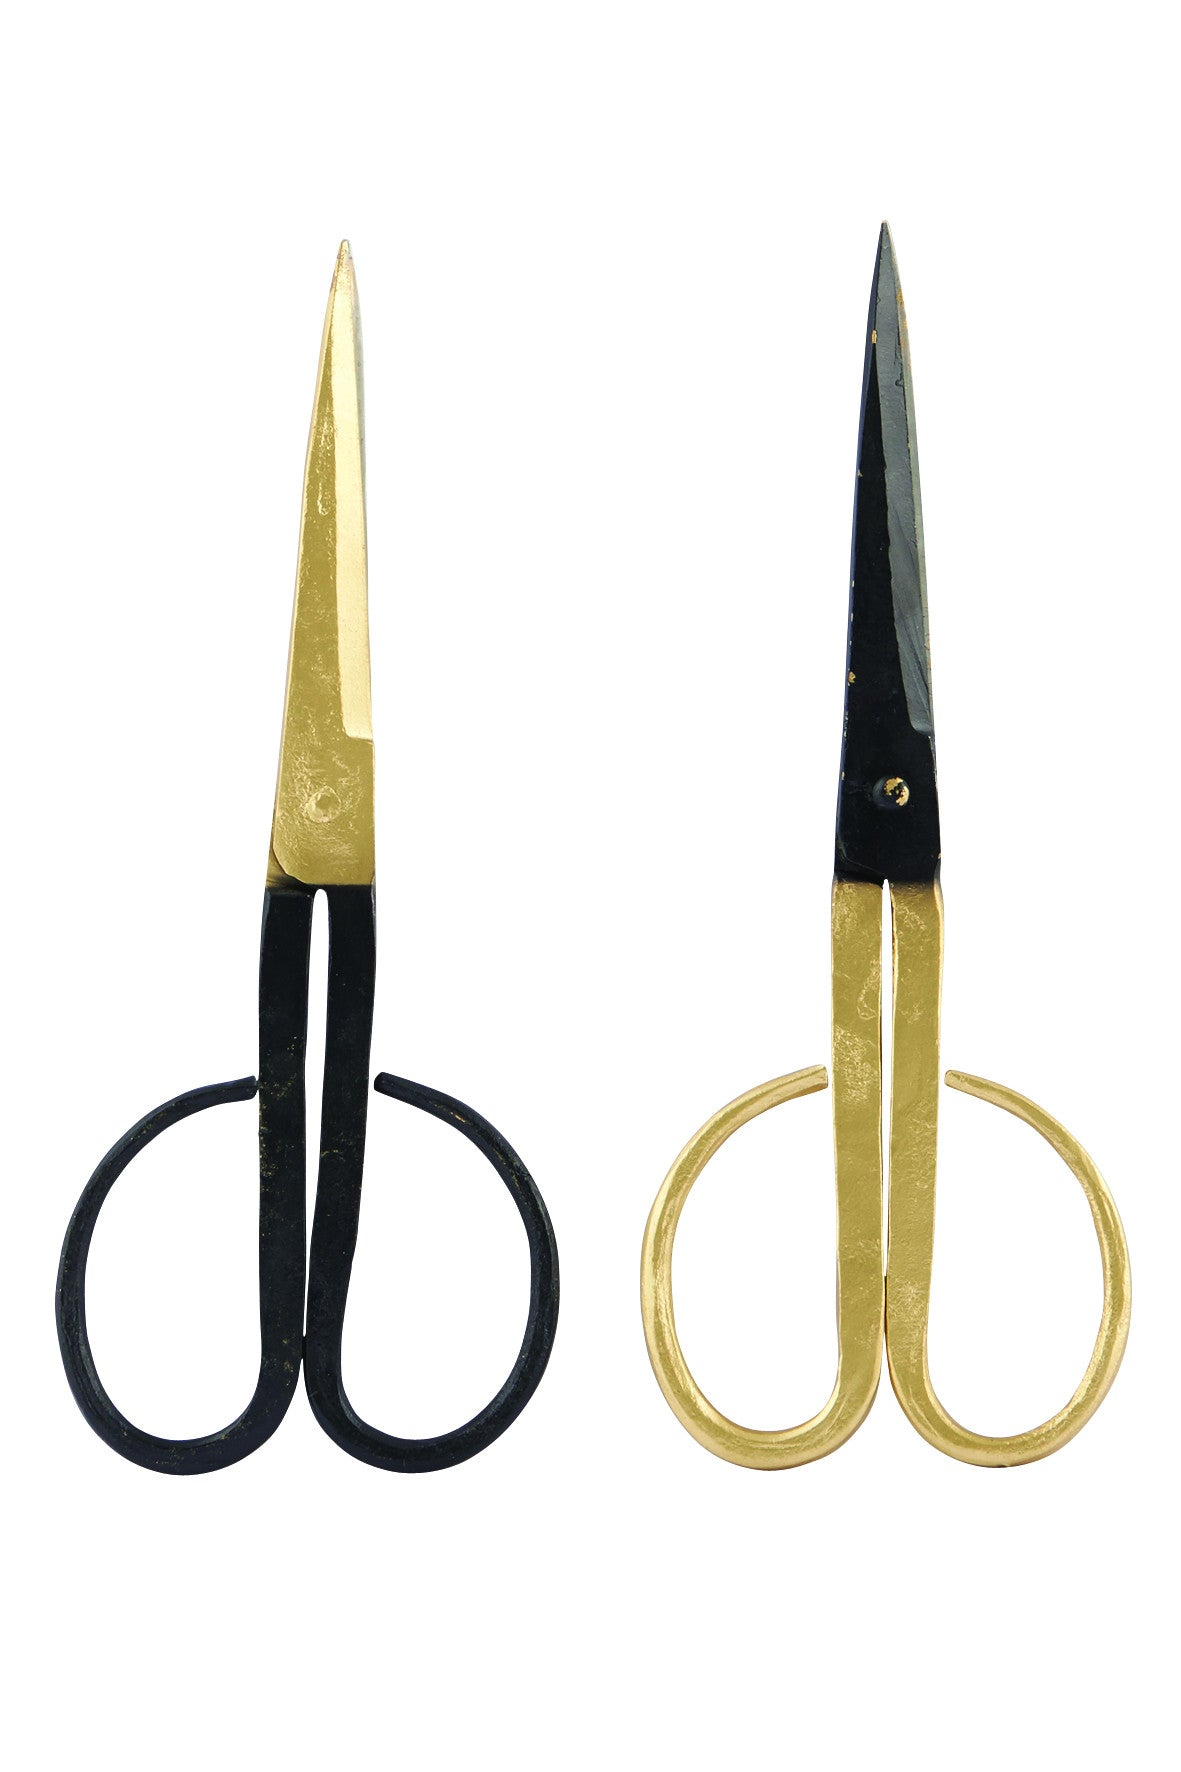 HOUSE DOCTOR Scissors, Brass and Black handle